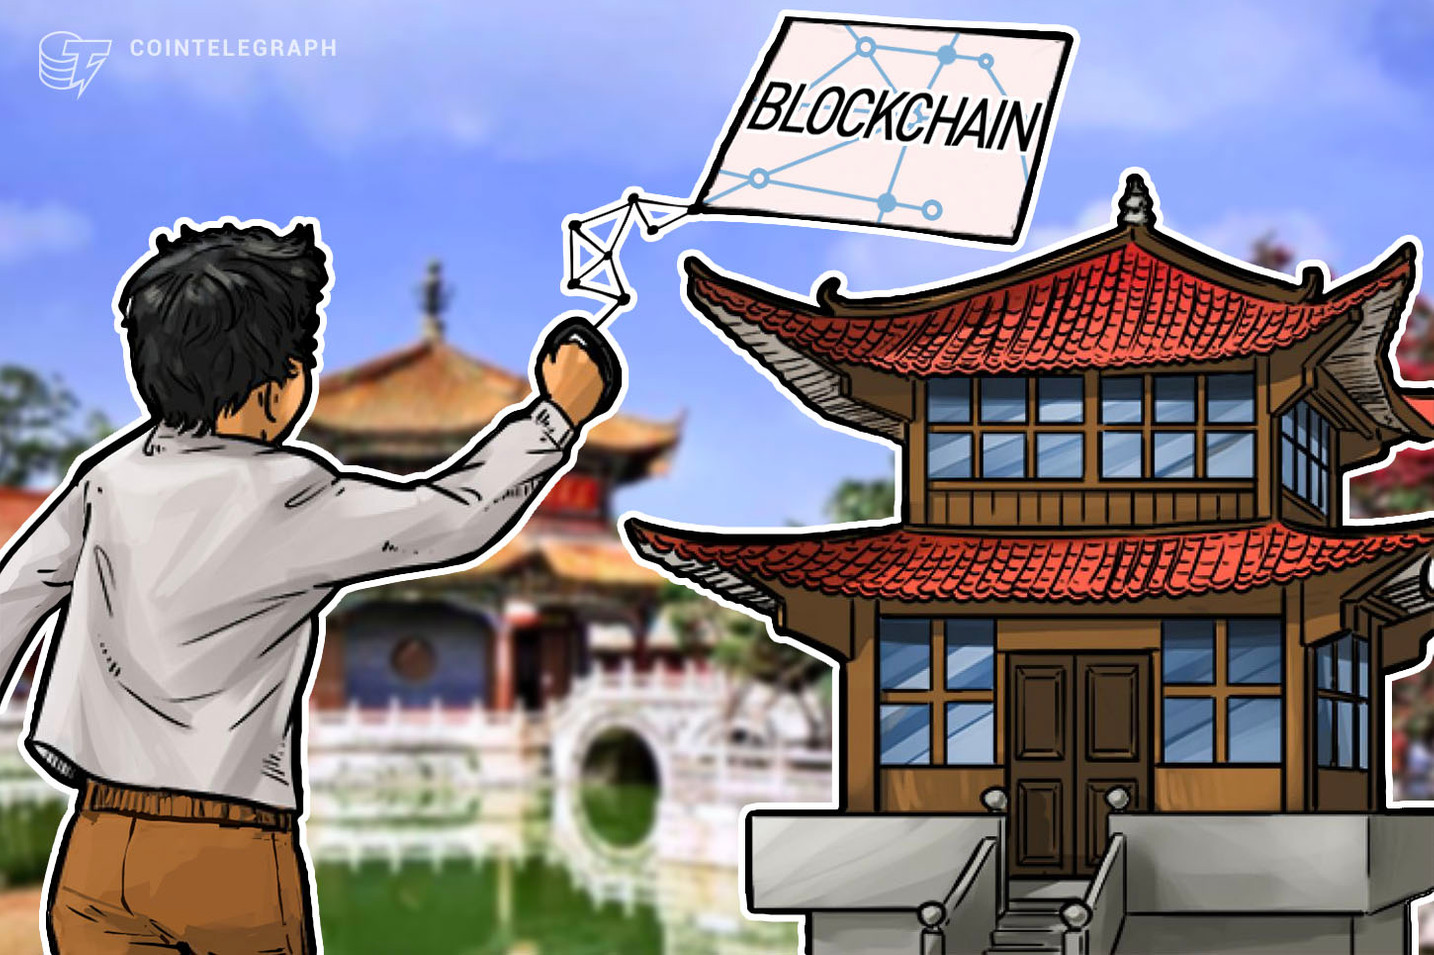 China Sees Sixfold Increase in Companies With 'Blockchain' in Their Title